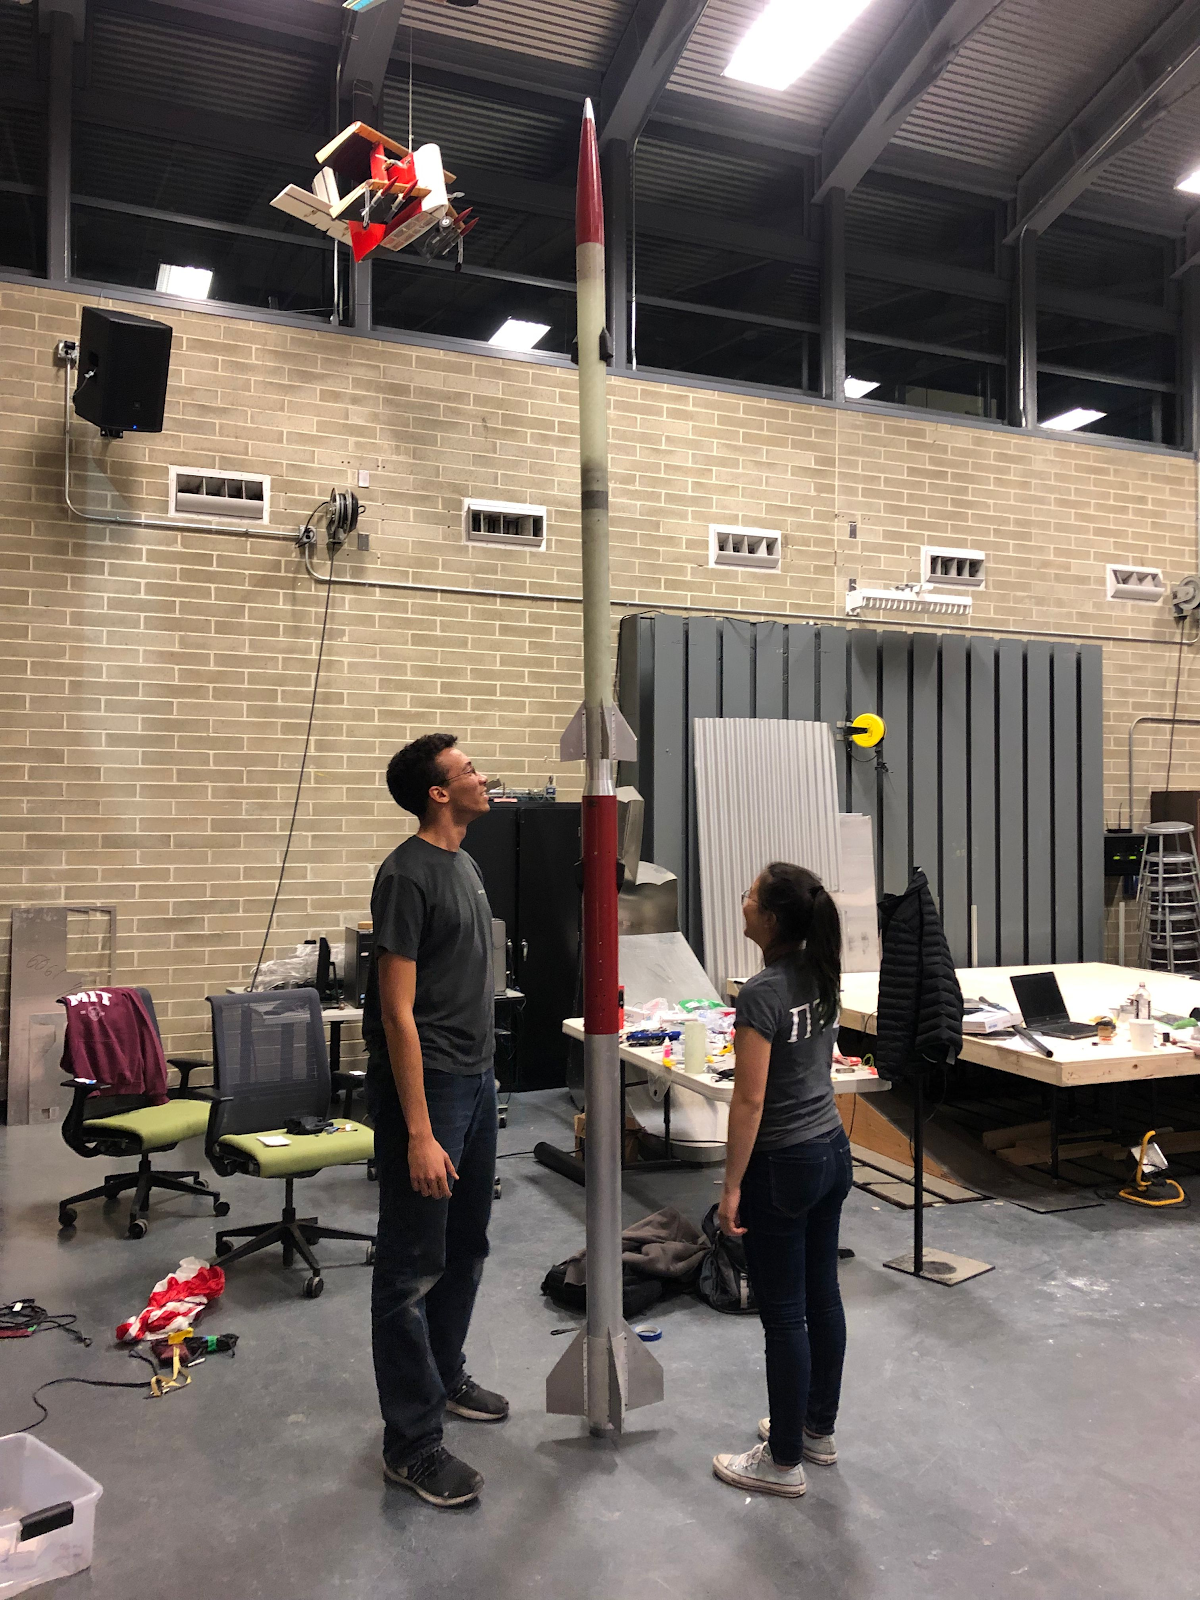 2 Rocket Team members standing next to our 2-stage rocket